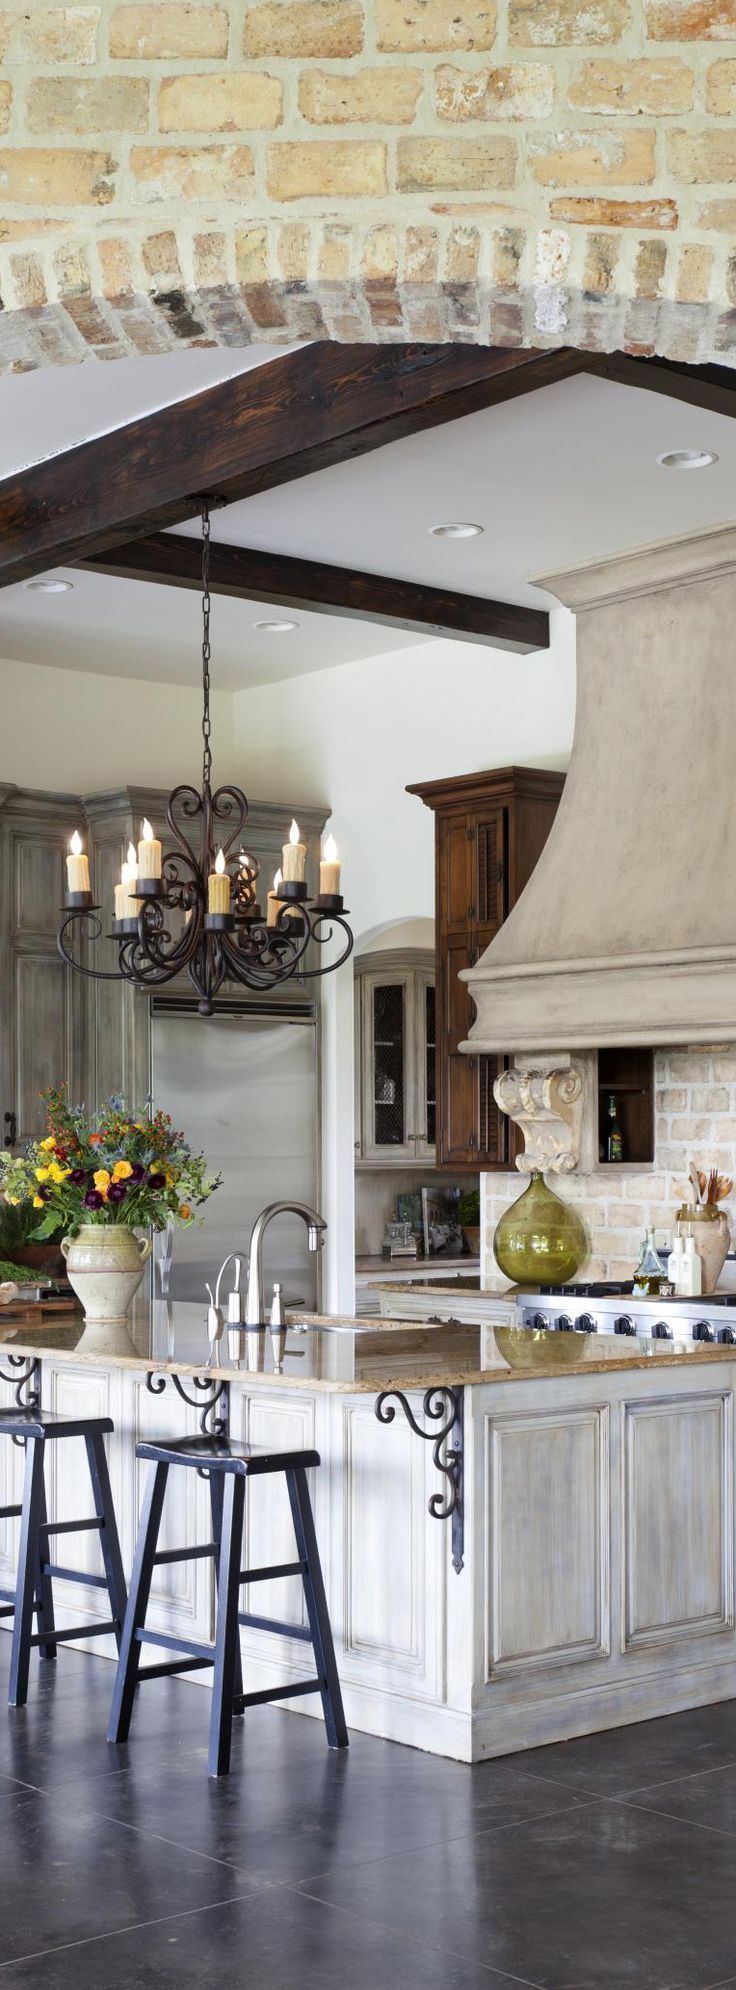 french country kitchen tap the link now to see where the worldu0027s leading interior designers purchase